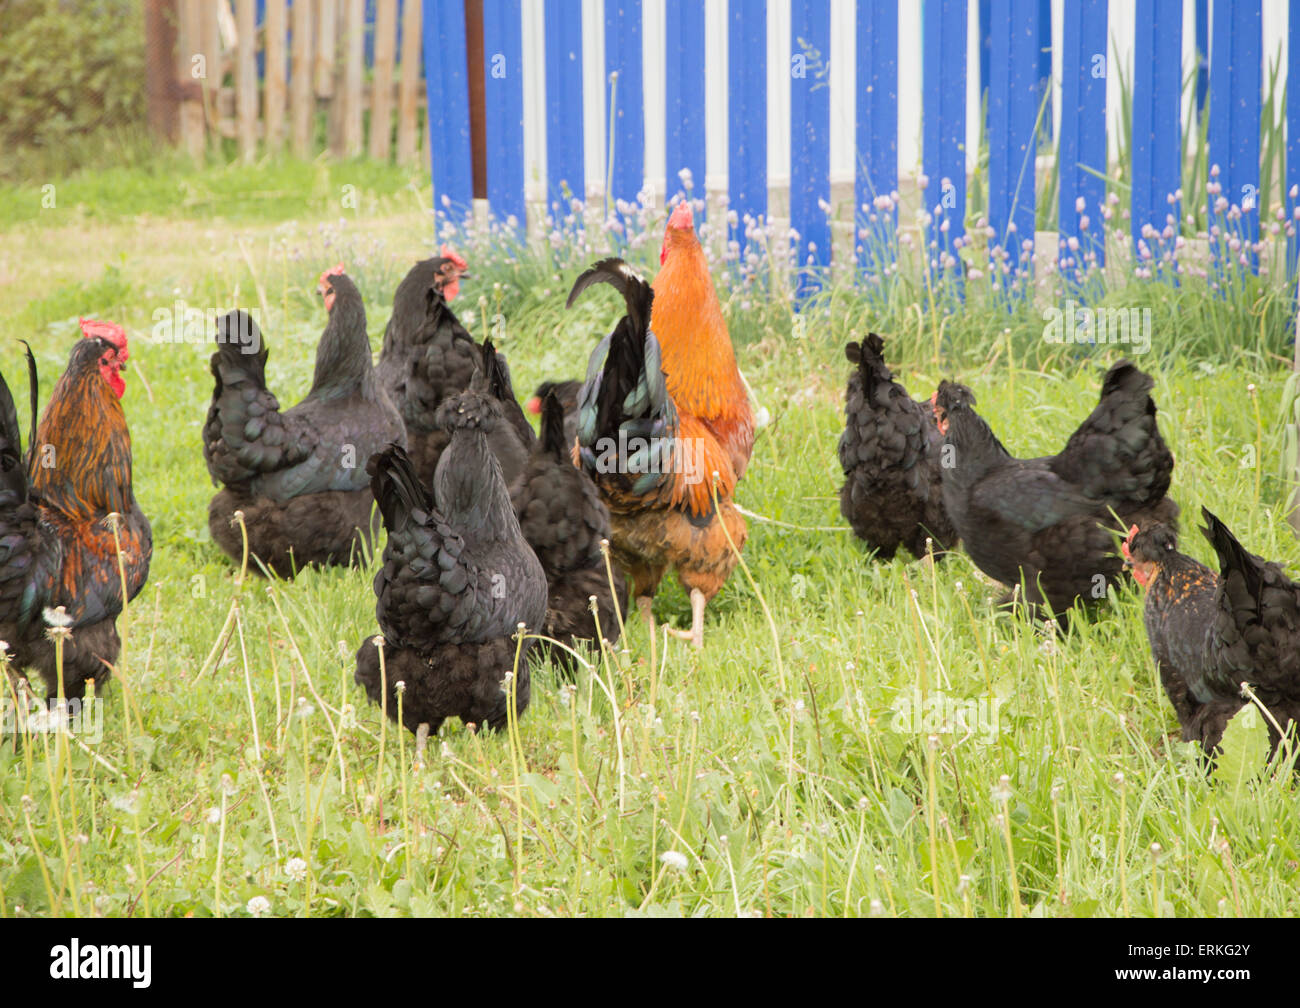 black hens and red rooster - Stock Image